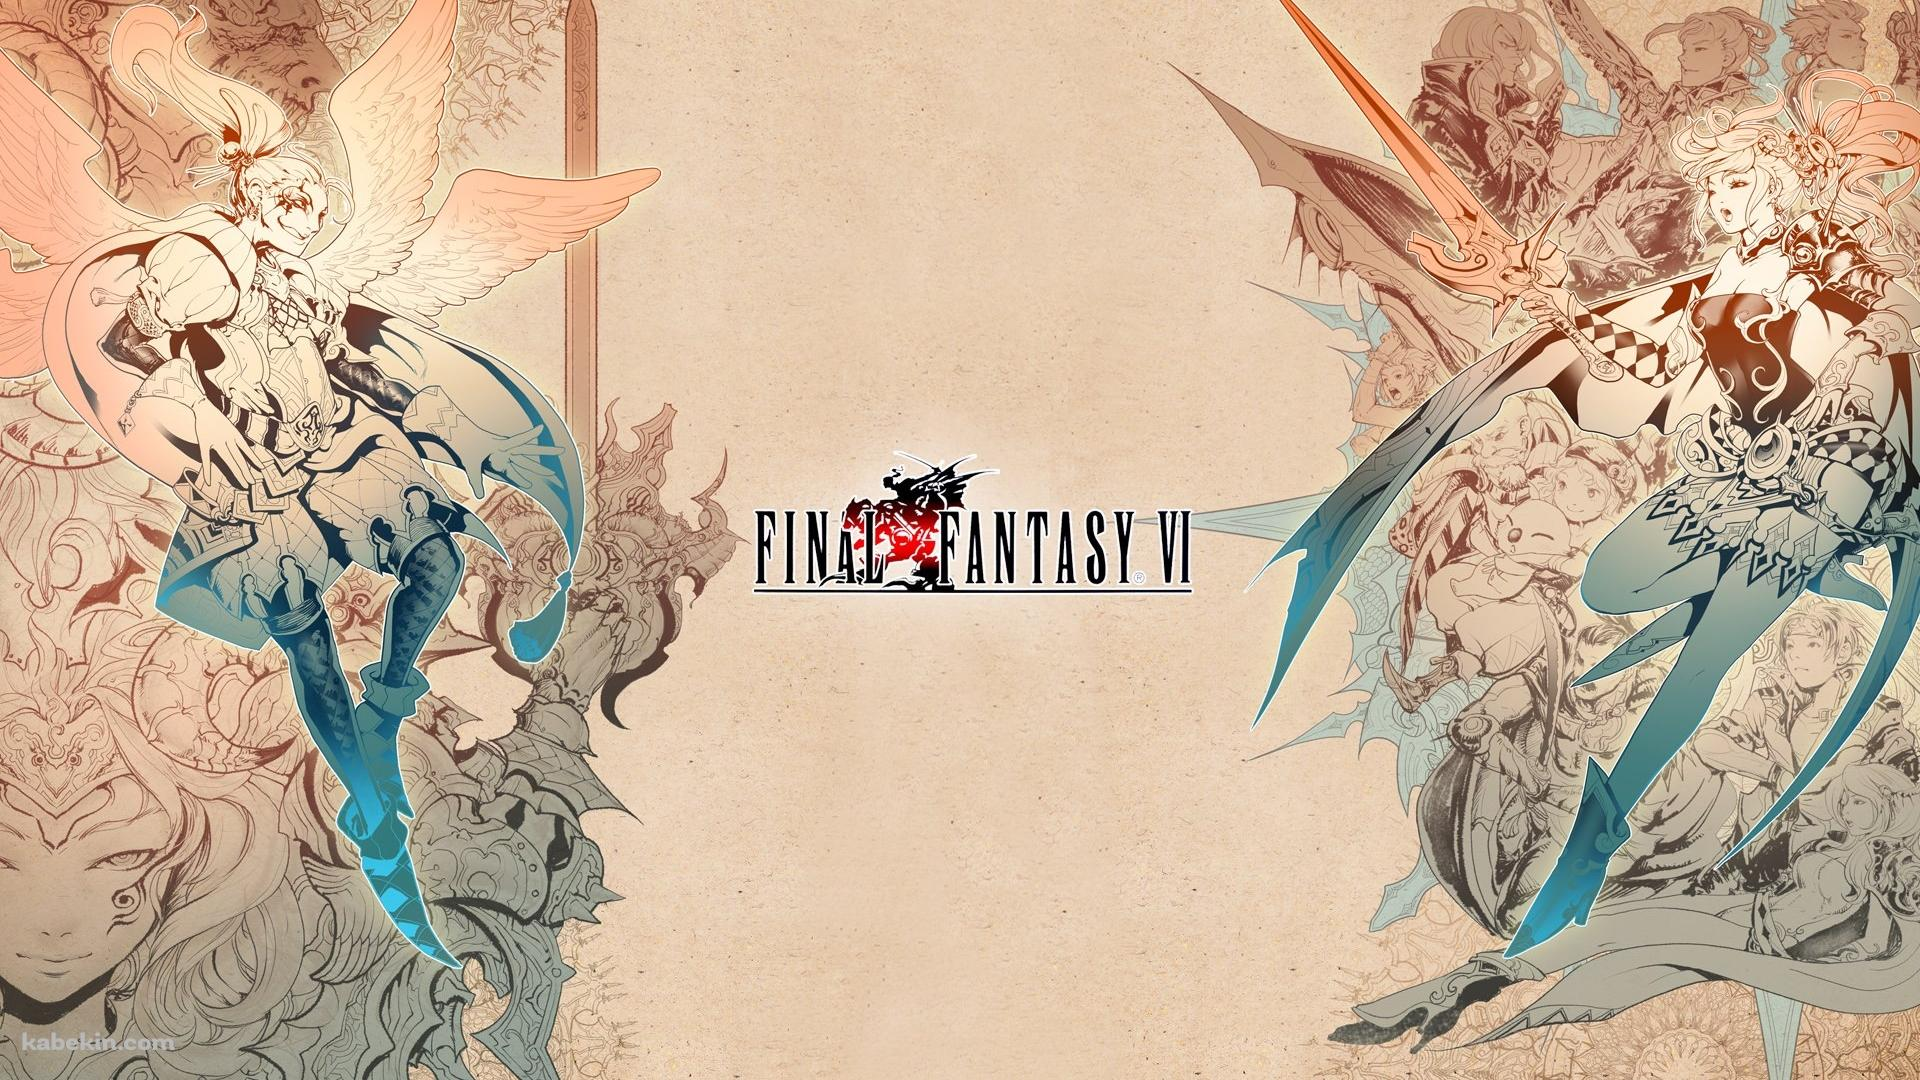 999999 100 Quality Hd Final Fantasy Images Wallpapers For